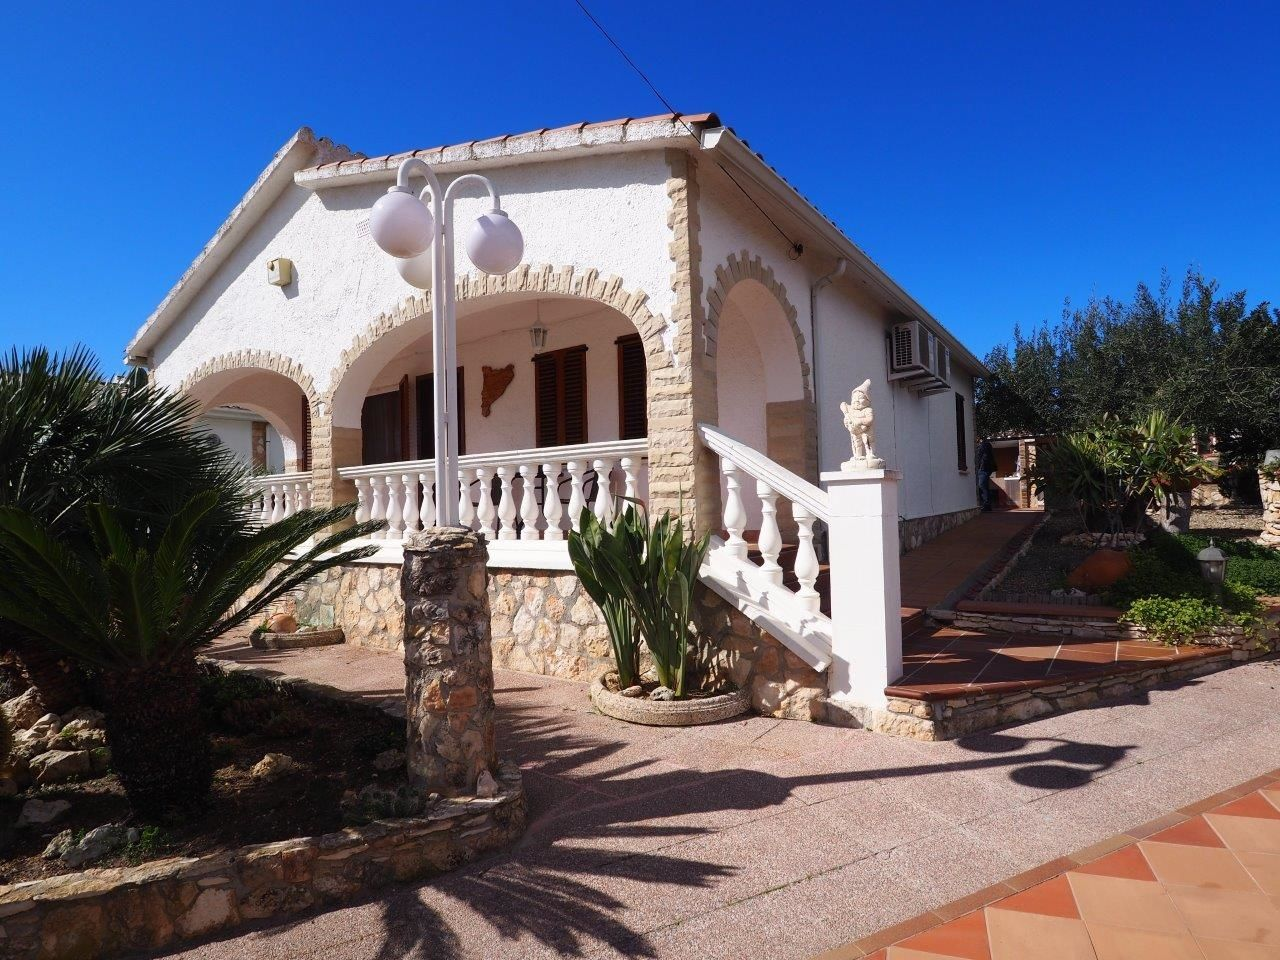 Chalet  Brises del mar. Casa independiente